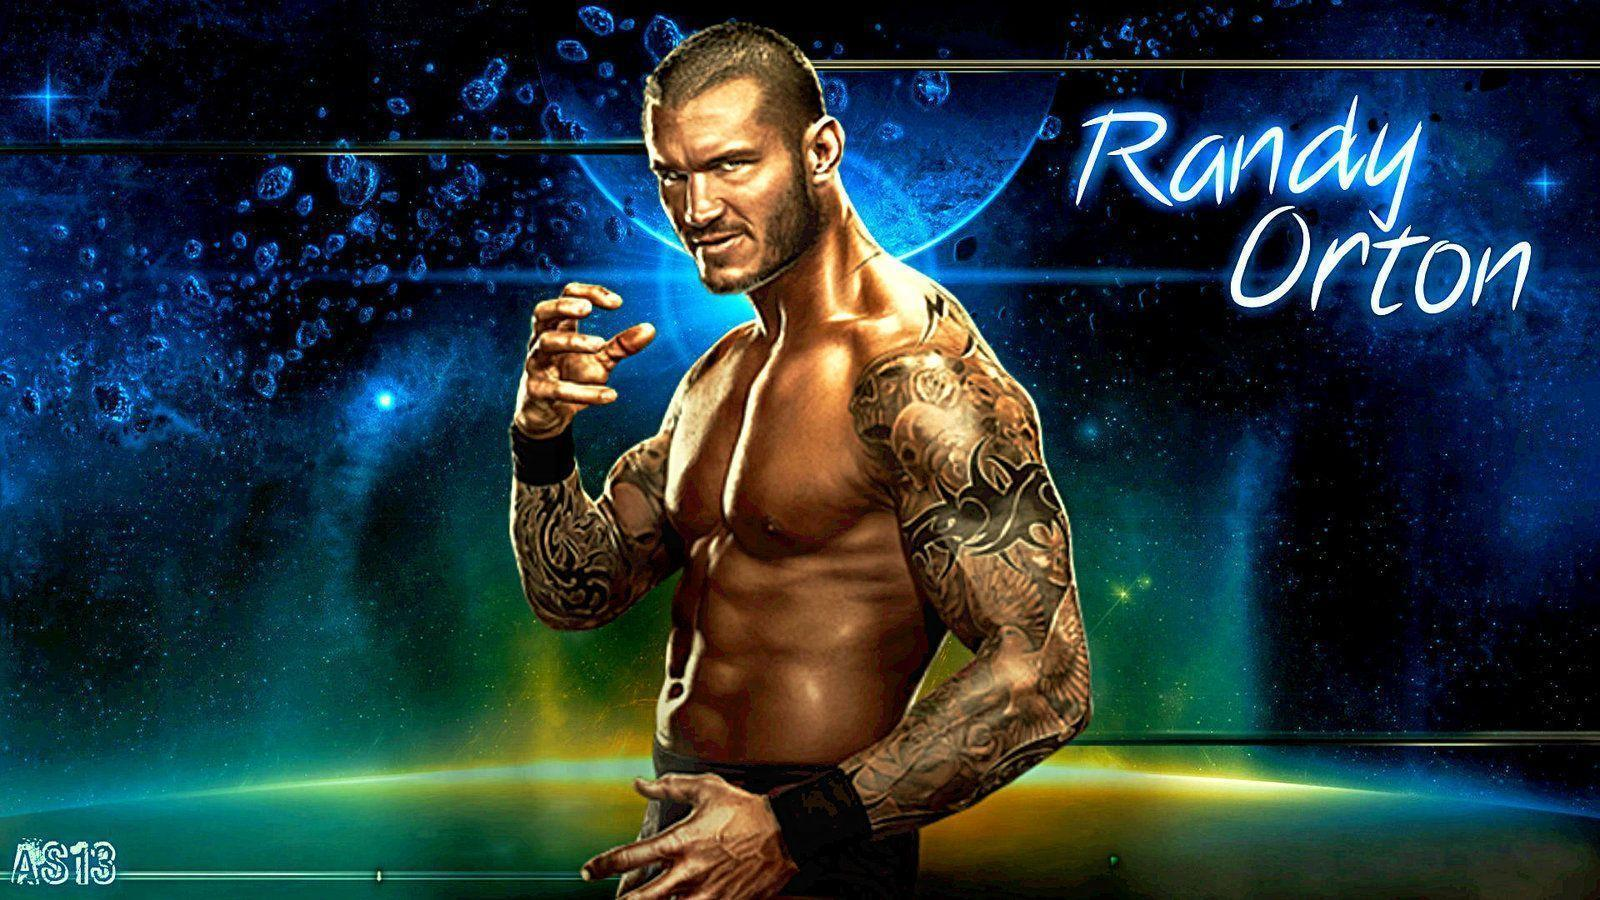 Randy Orton Hd Wallpapers